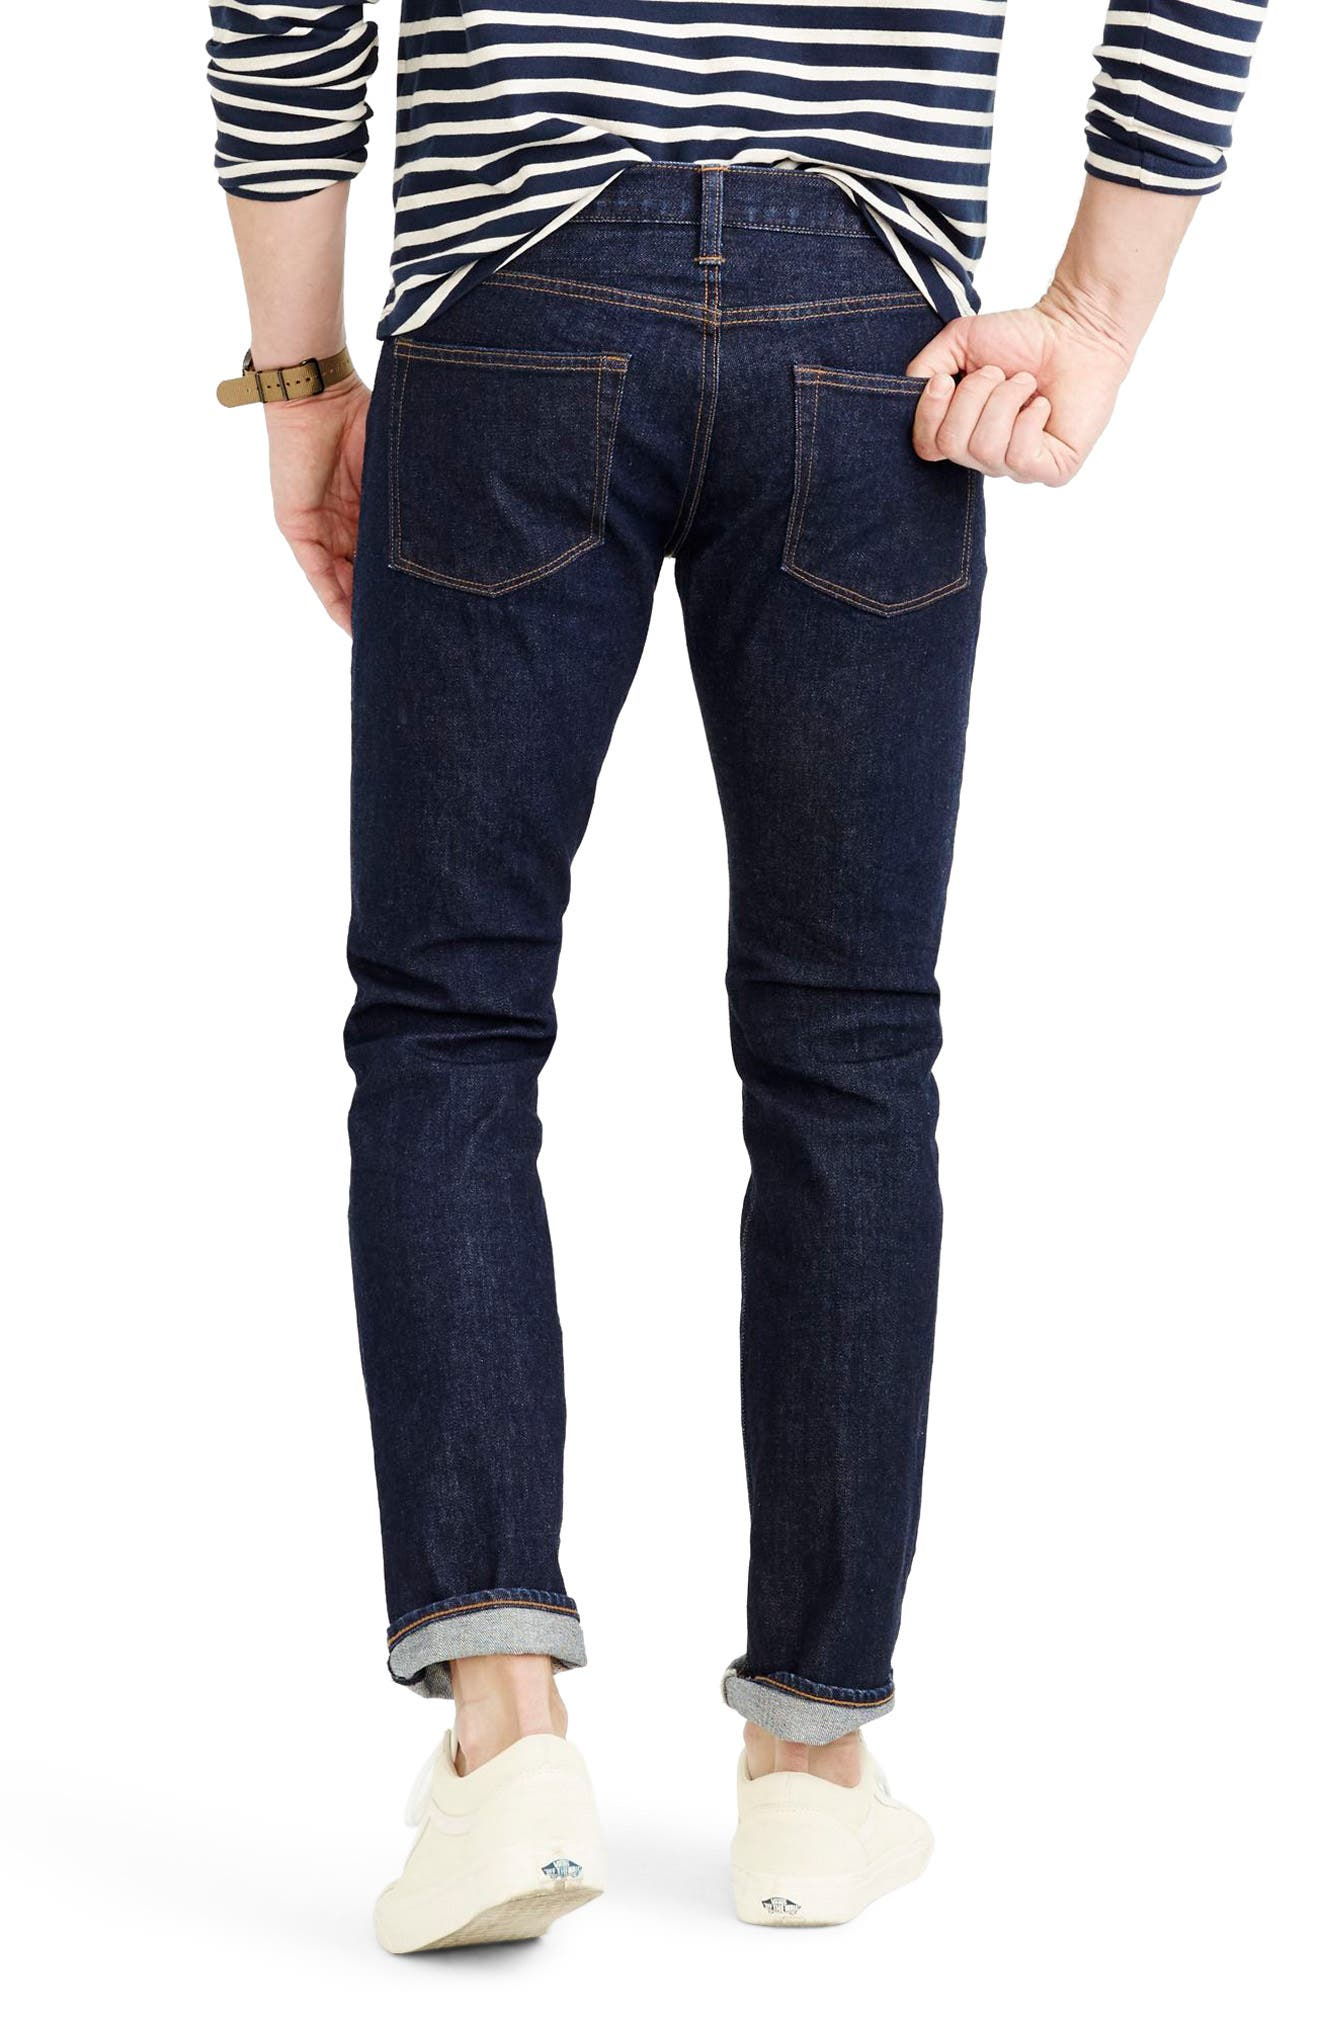 484 Slim Fit Stretch Jeans,                             Alternate thumbnail 2, color,